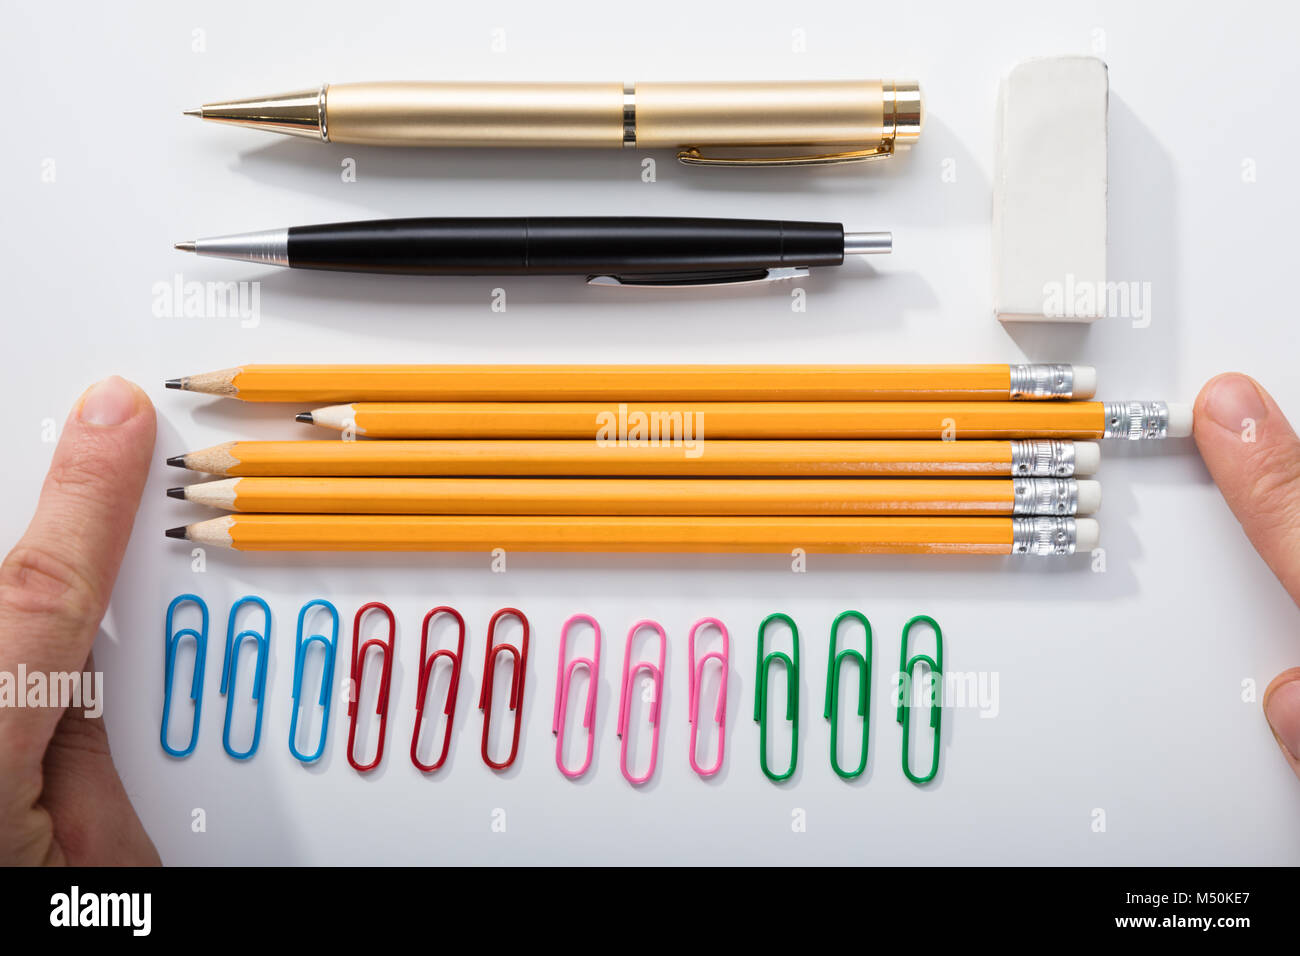 Person's Finger Arranging The Pencils With Row Of Pins Rubber And Pen On White Background Stock Photo